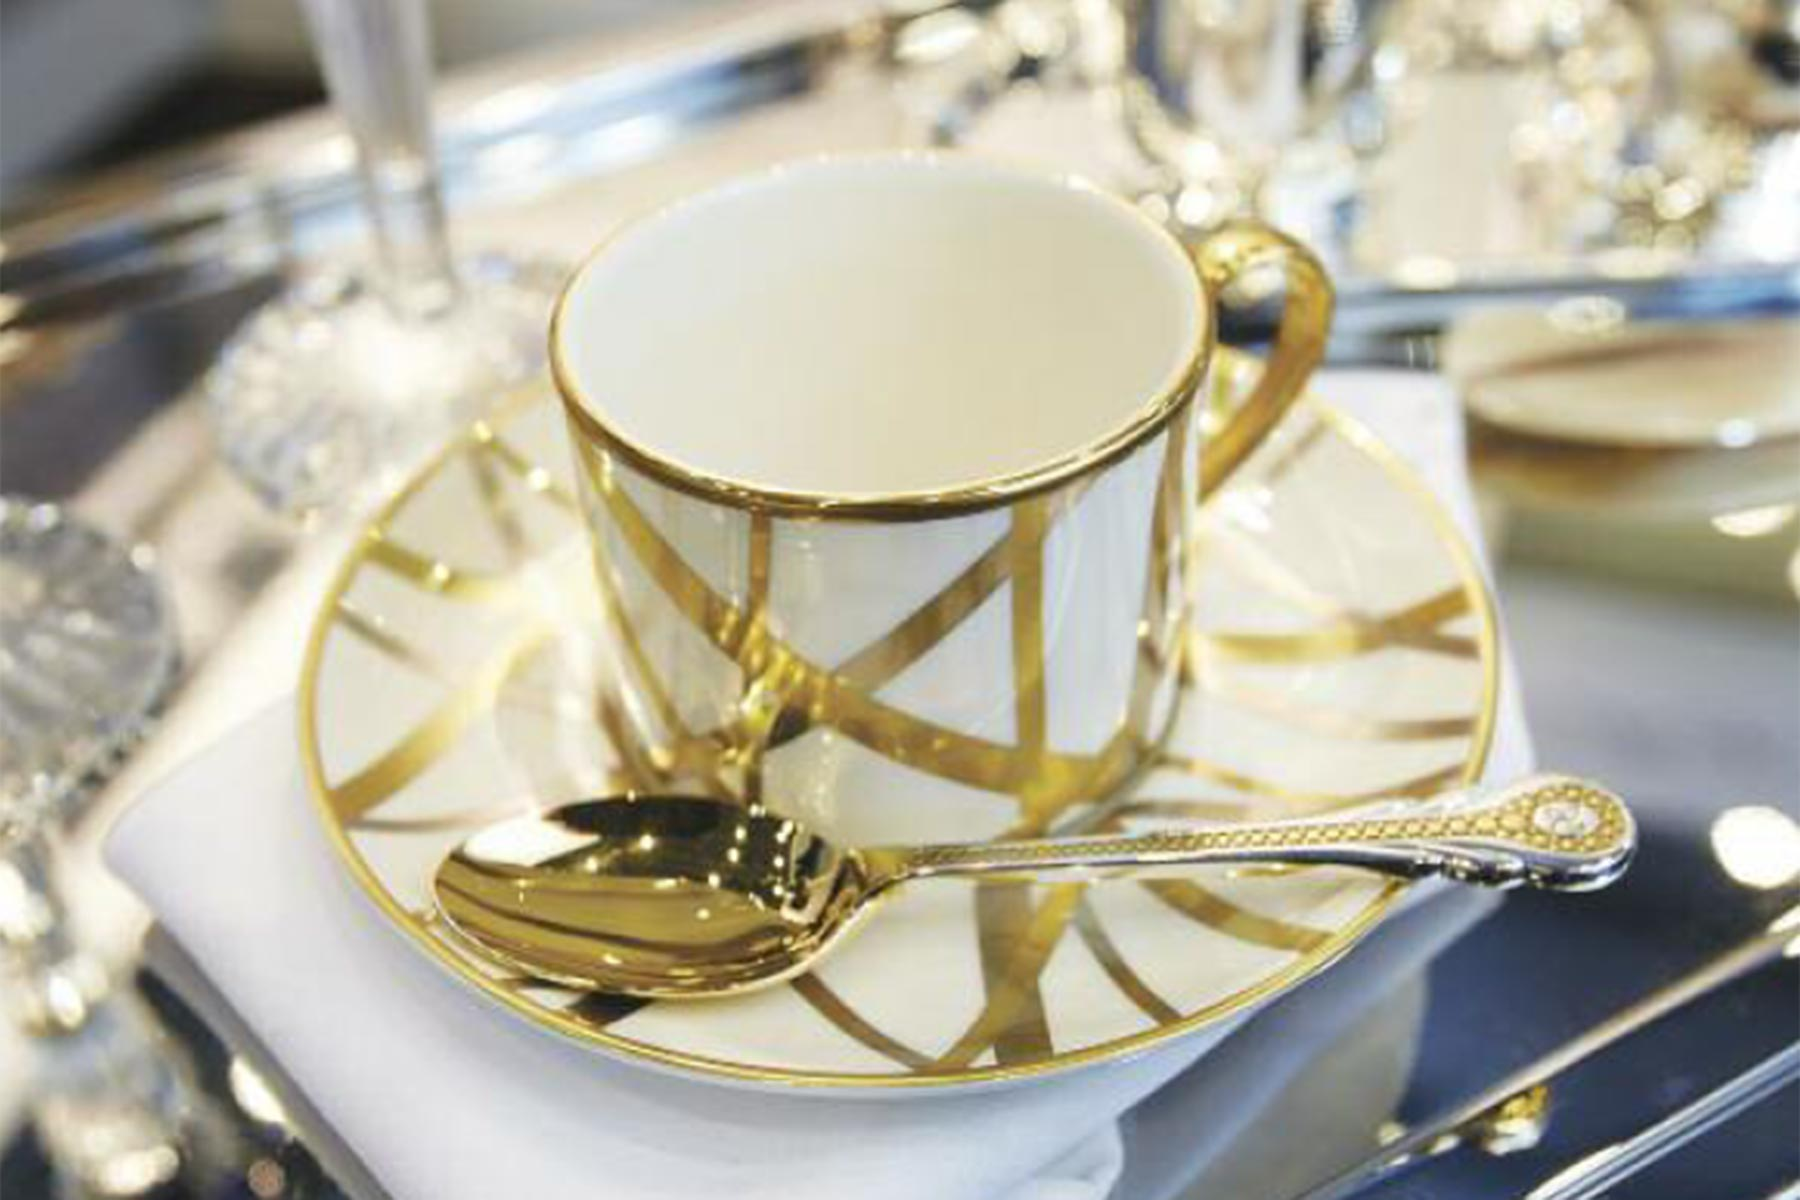 A custom tea set with gold lace and gold spoon